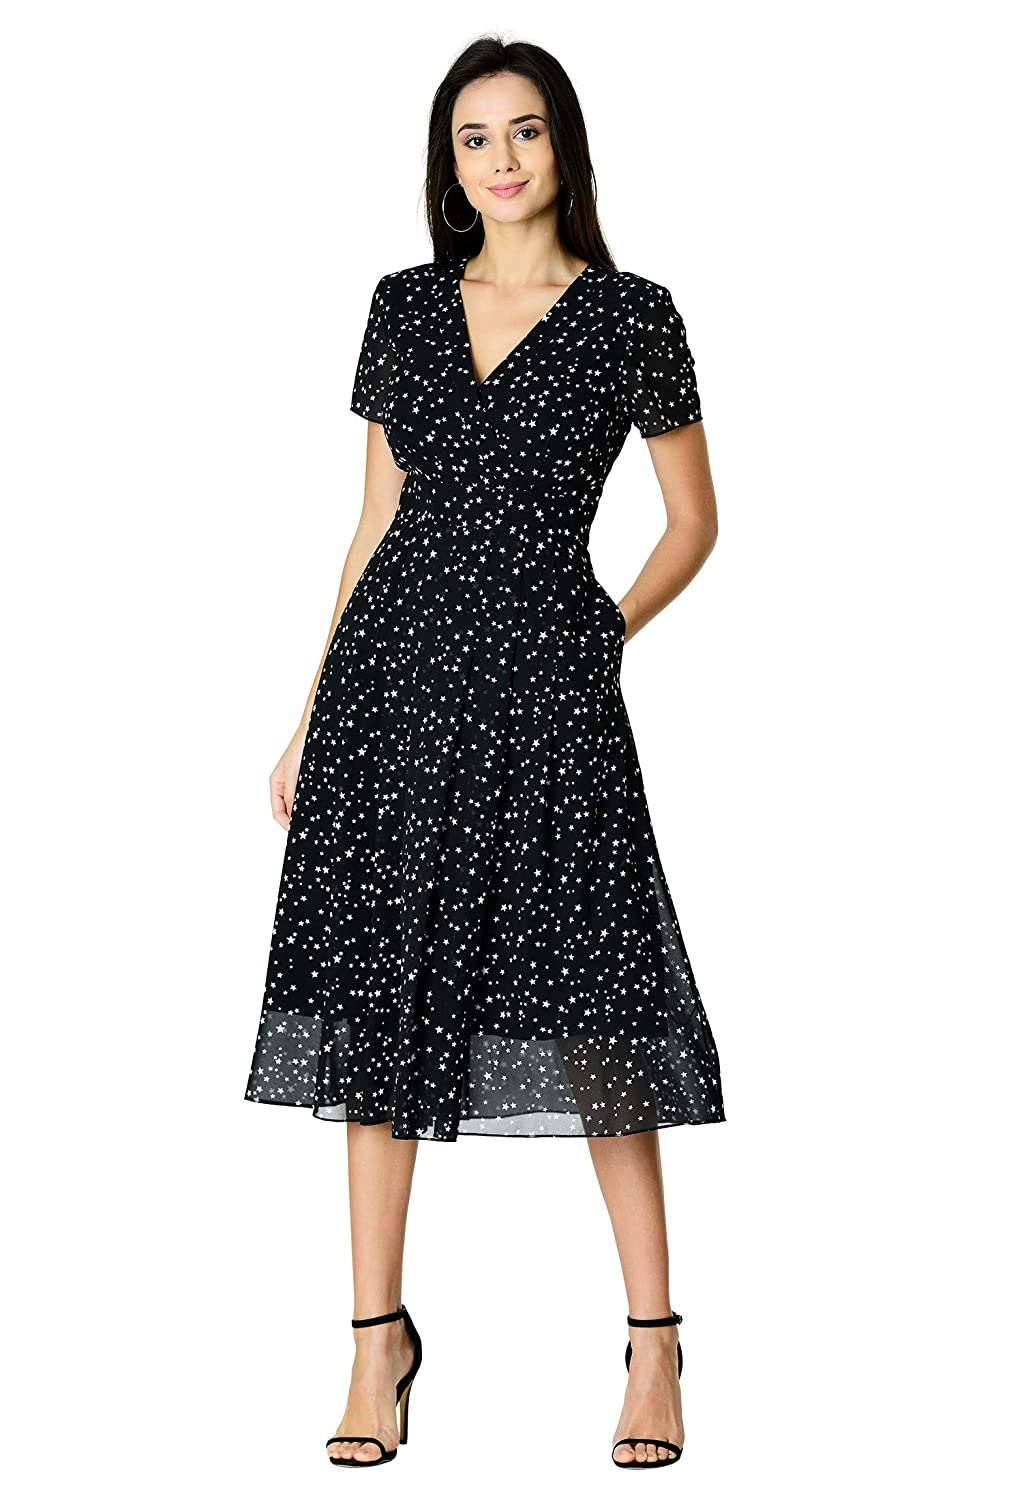 1940s Plus Size Clothing: Dresses History eShakti FX Surplice Star Print Georgette Dress $69.95 AT vintagedancer.com